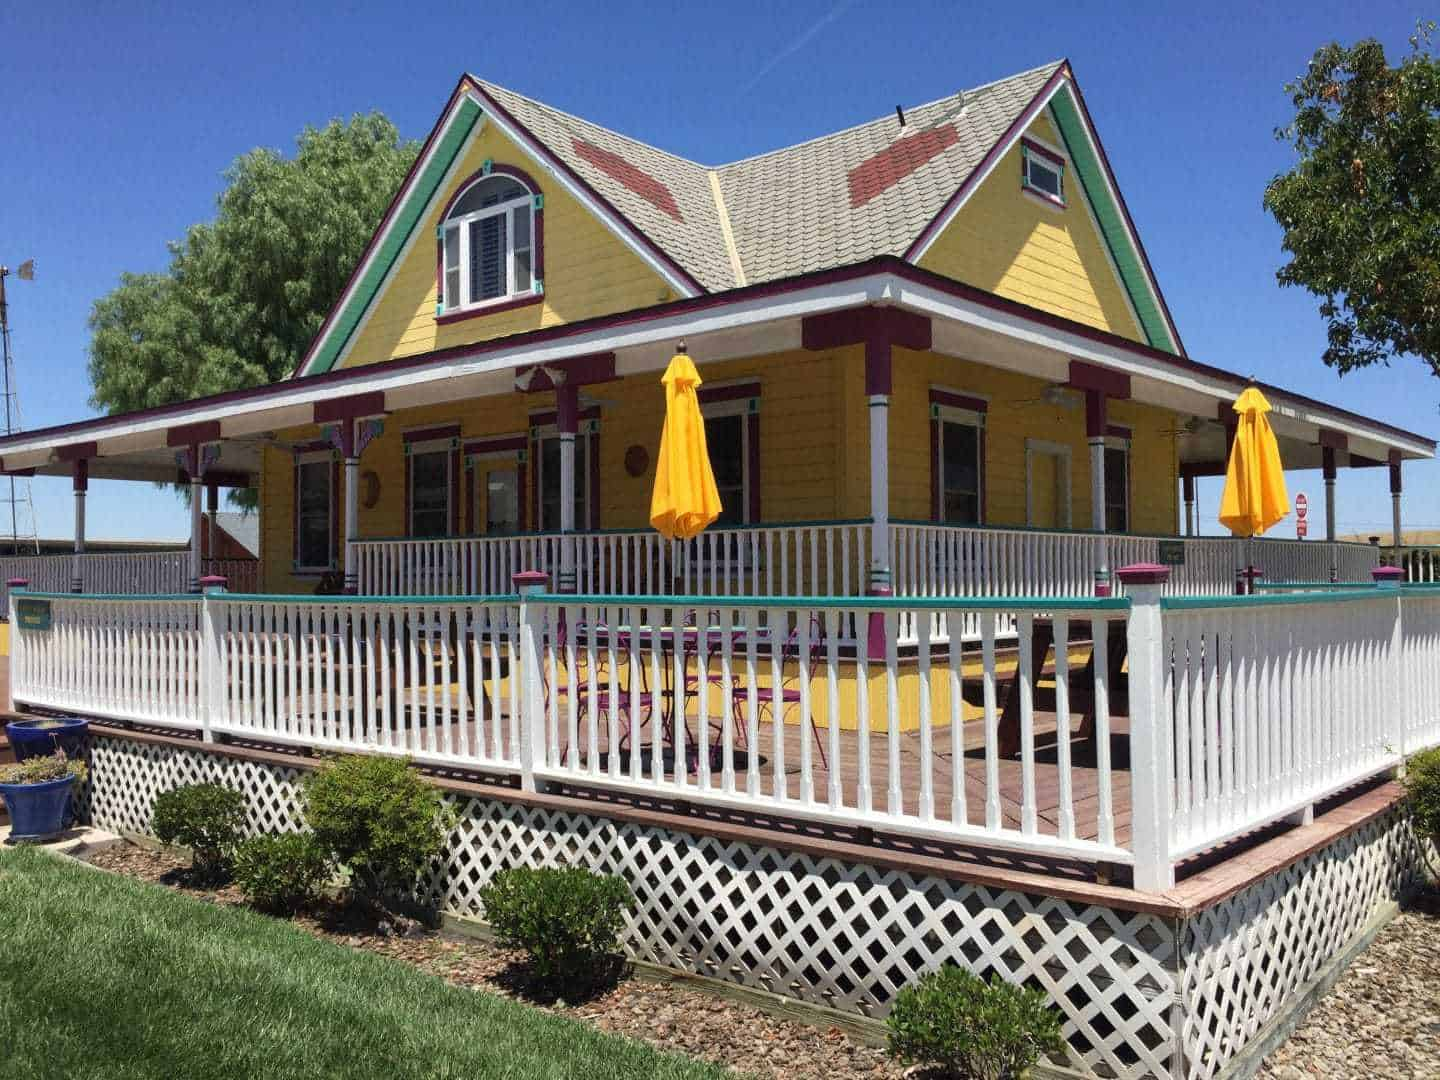 tobin james winery guest house